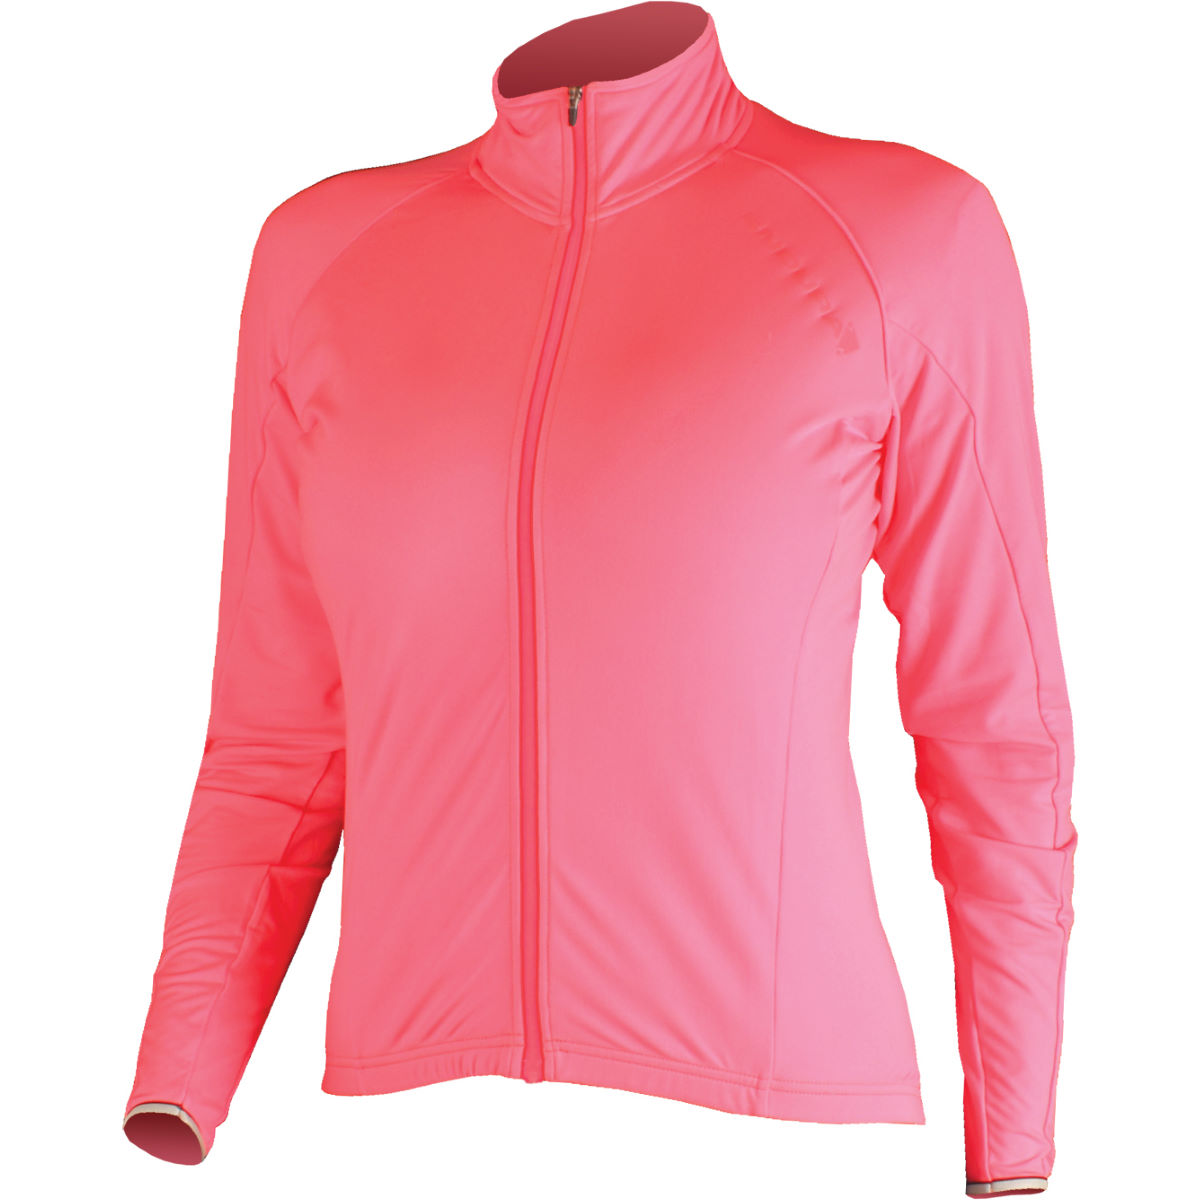 Endura Women's Roubaix Jacket - Large Hi-Viz Pink